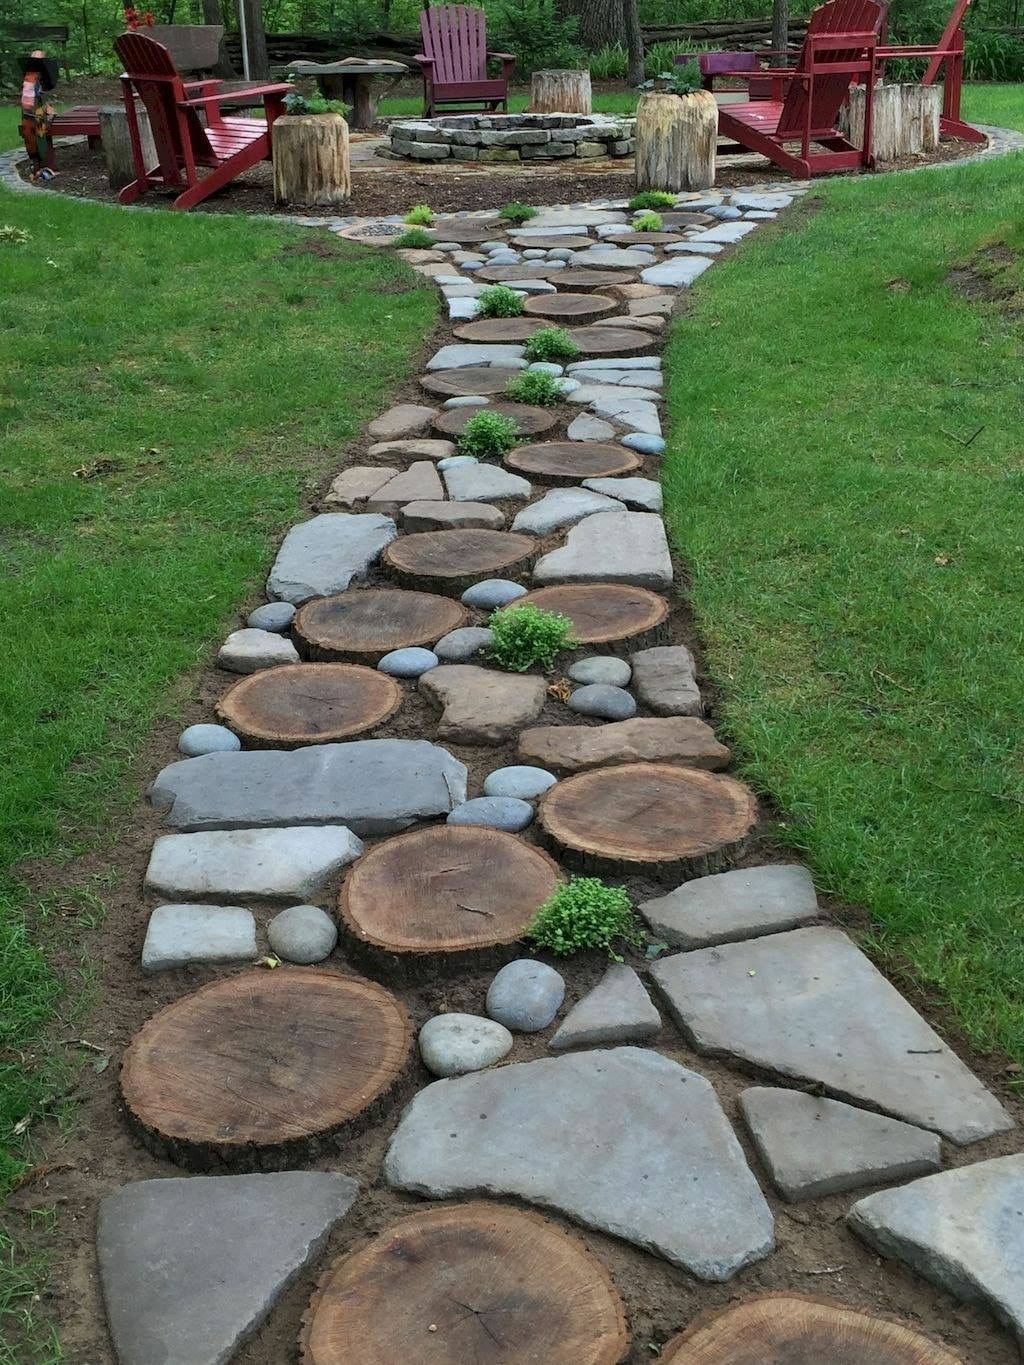 Awesome Inspiration! Such a lovely path/walkway from wood